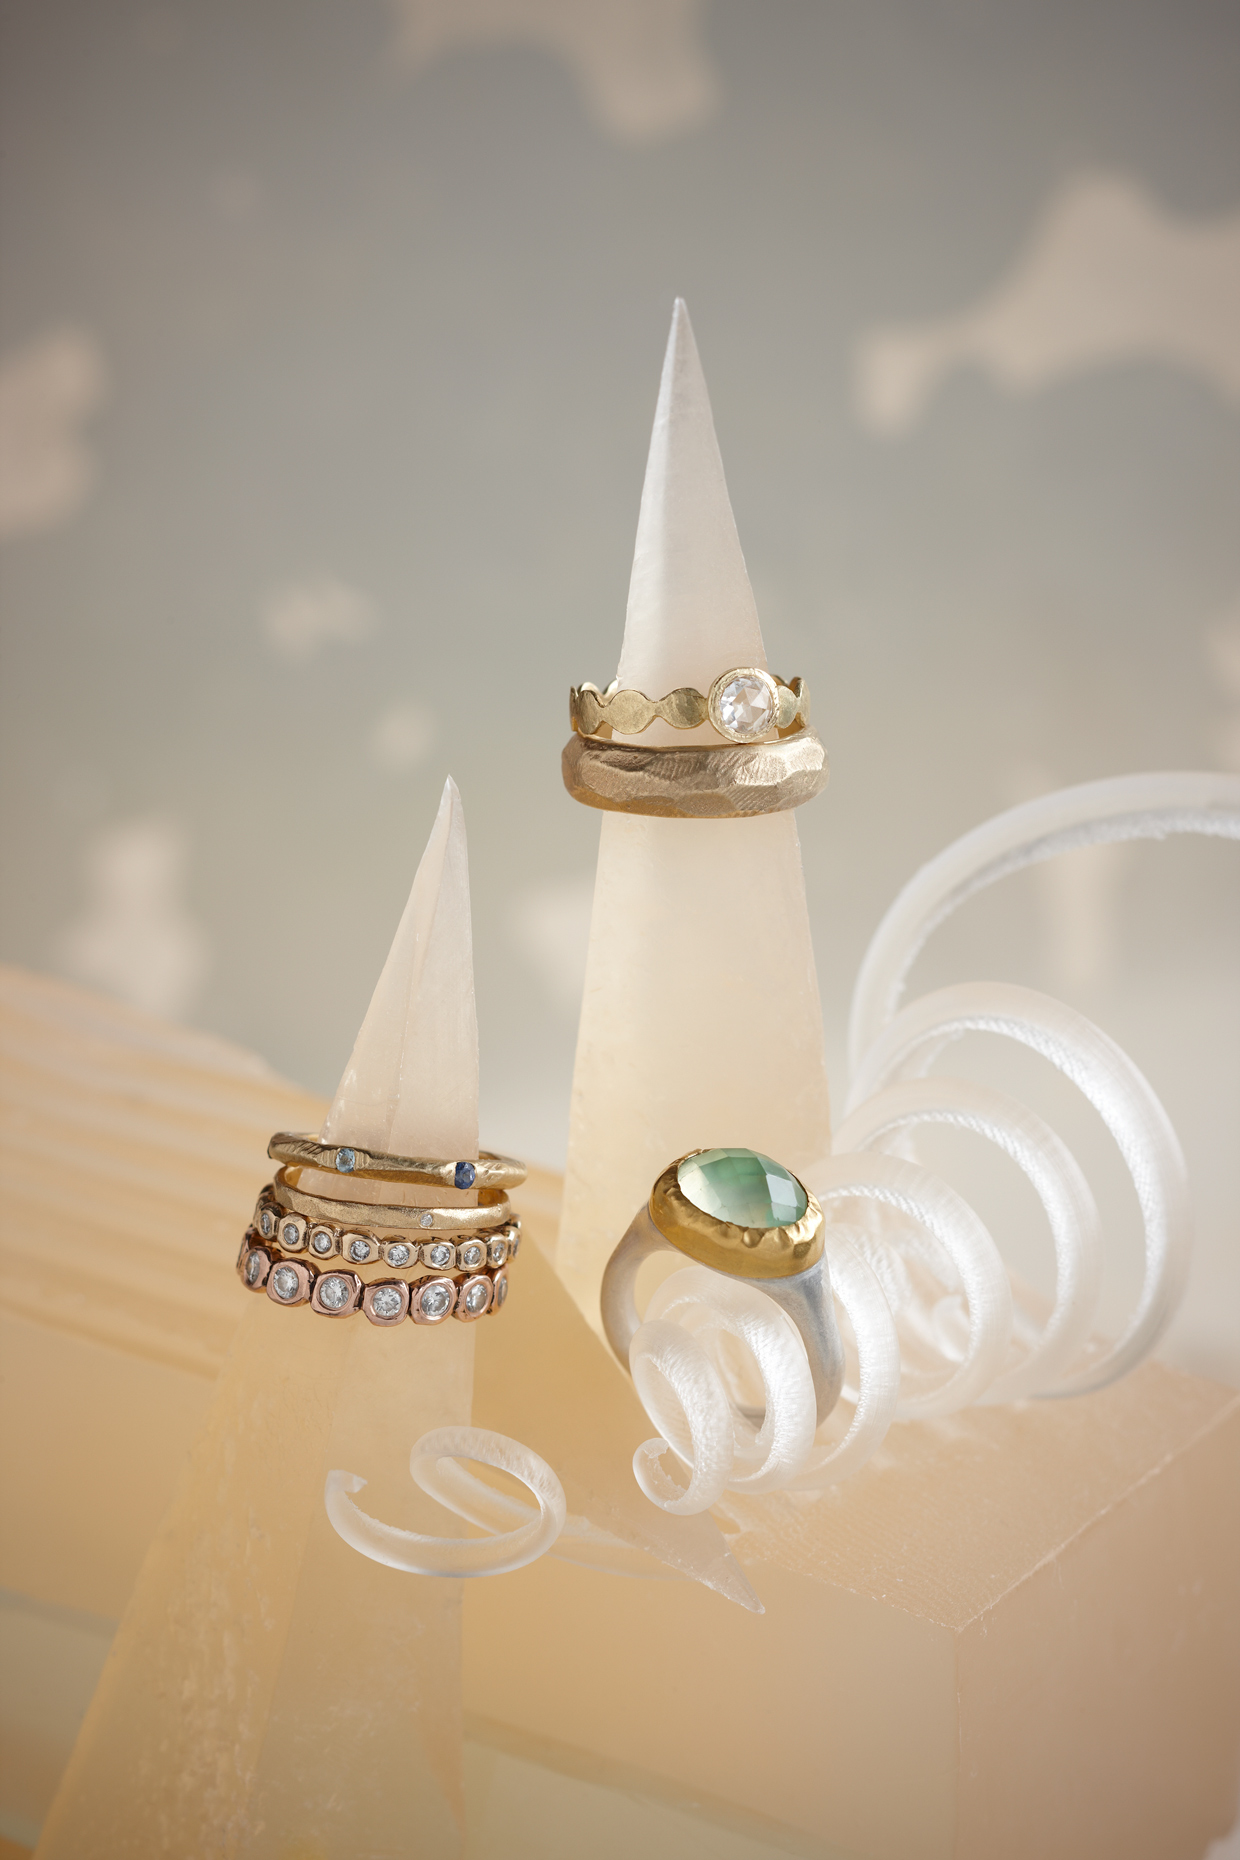 Product photography Jewelry Derek Israelsen Band Rings